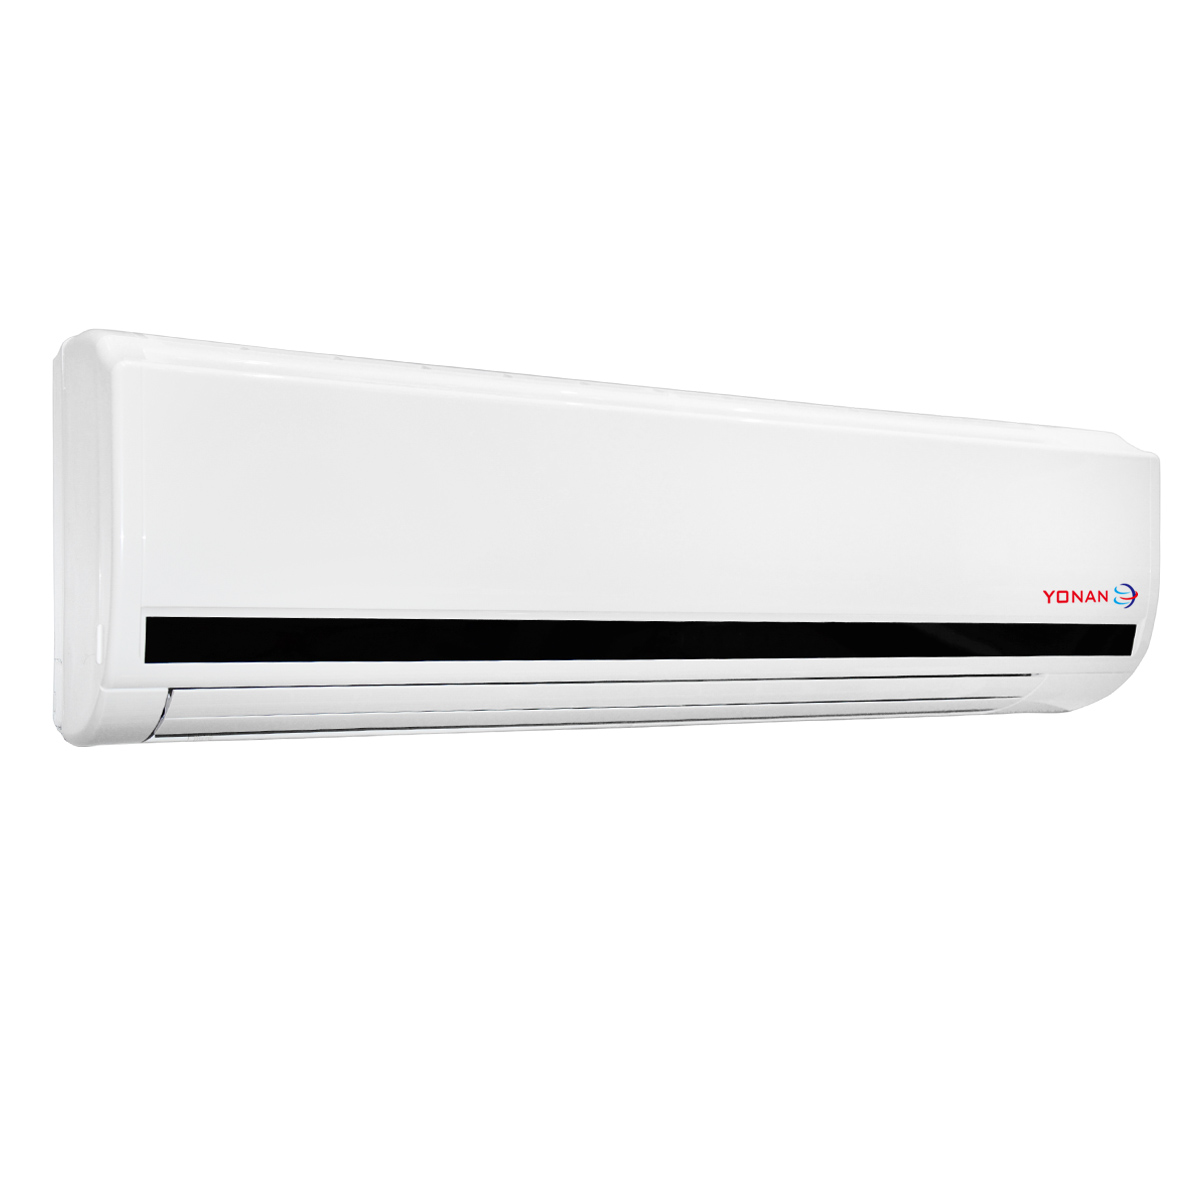 AIR CONDITIONER Split Air Conditioner 24000 BTU